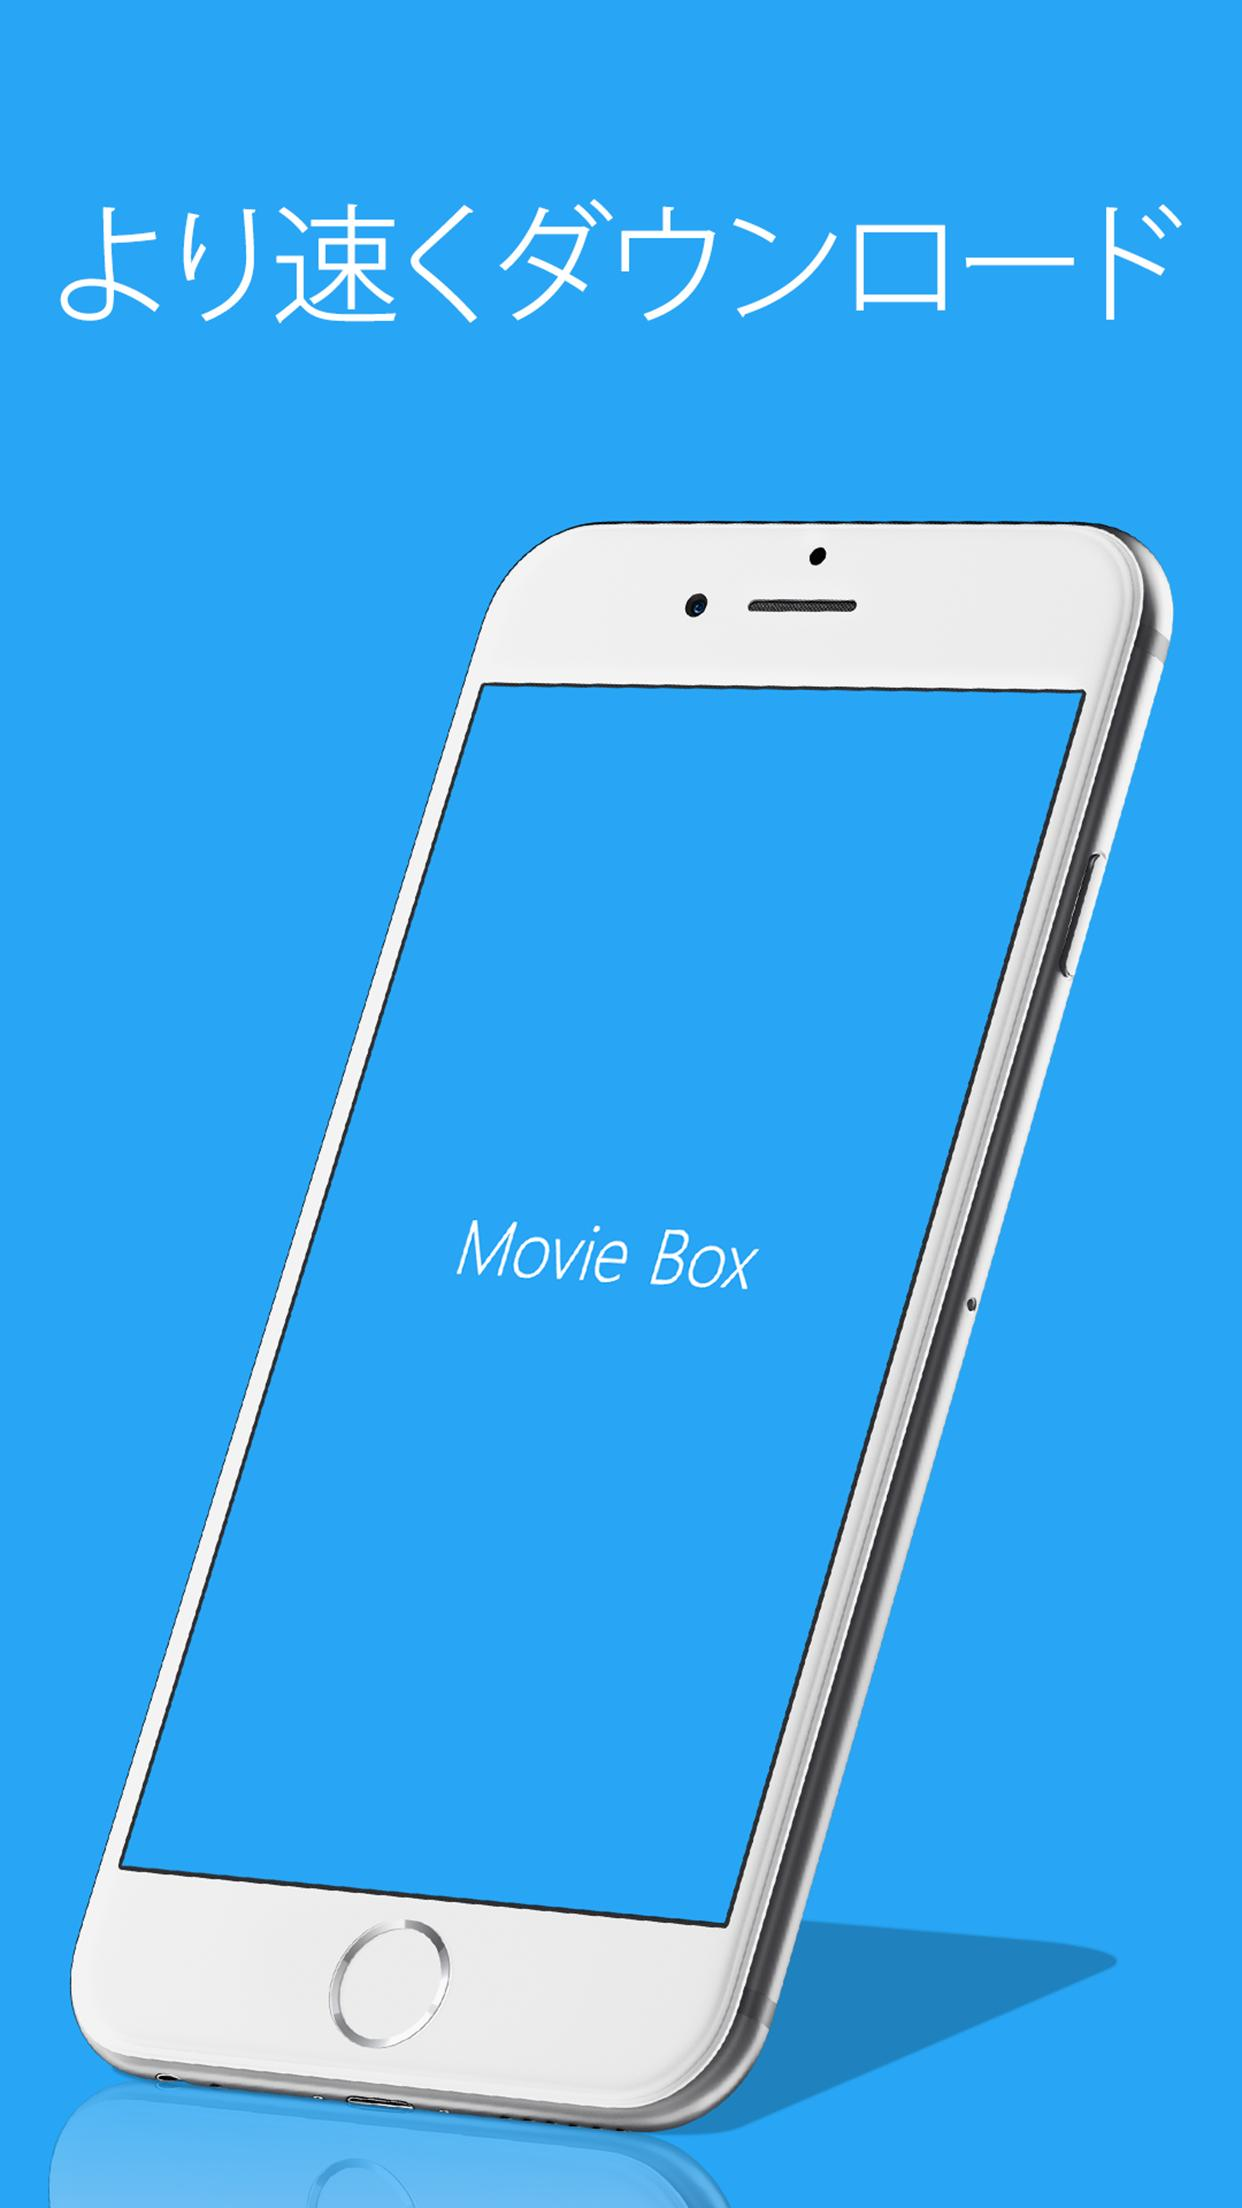 Movie Box for Android - APK Download